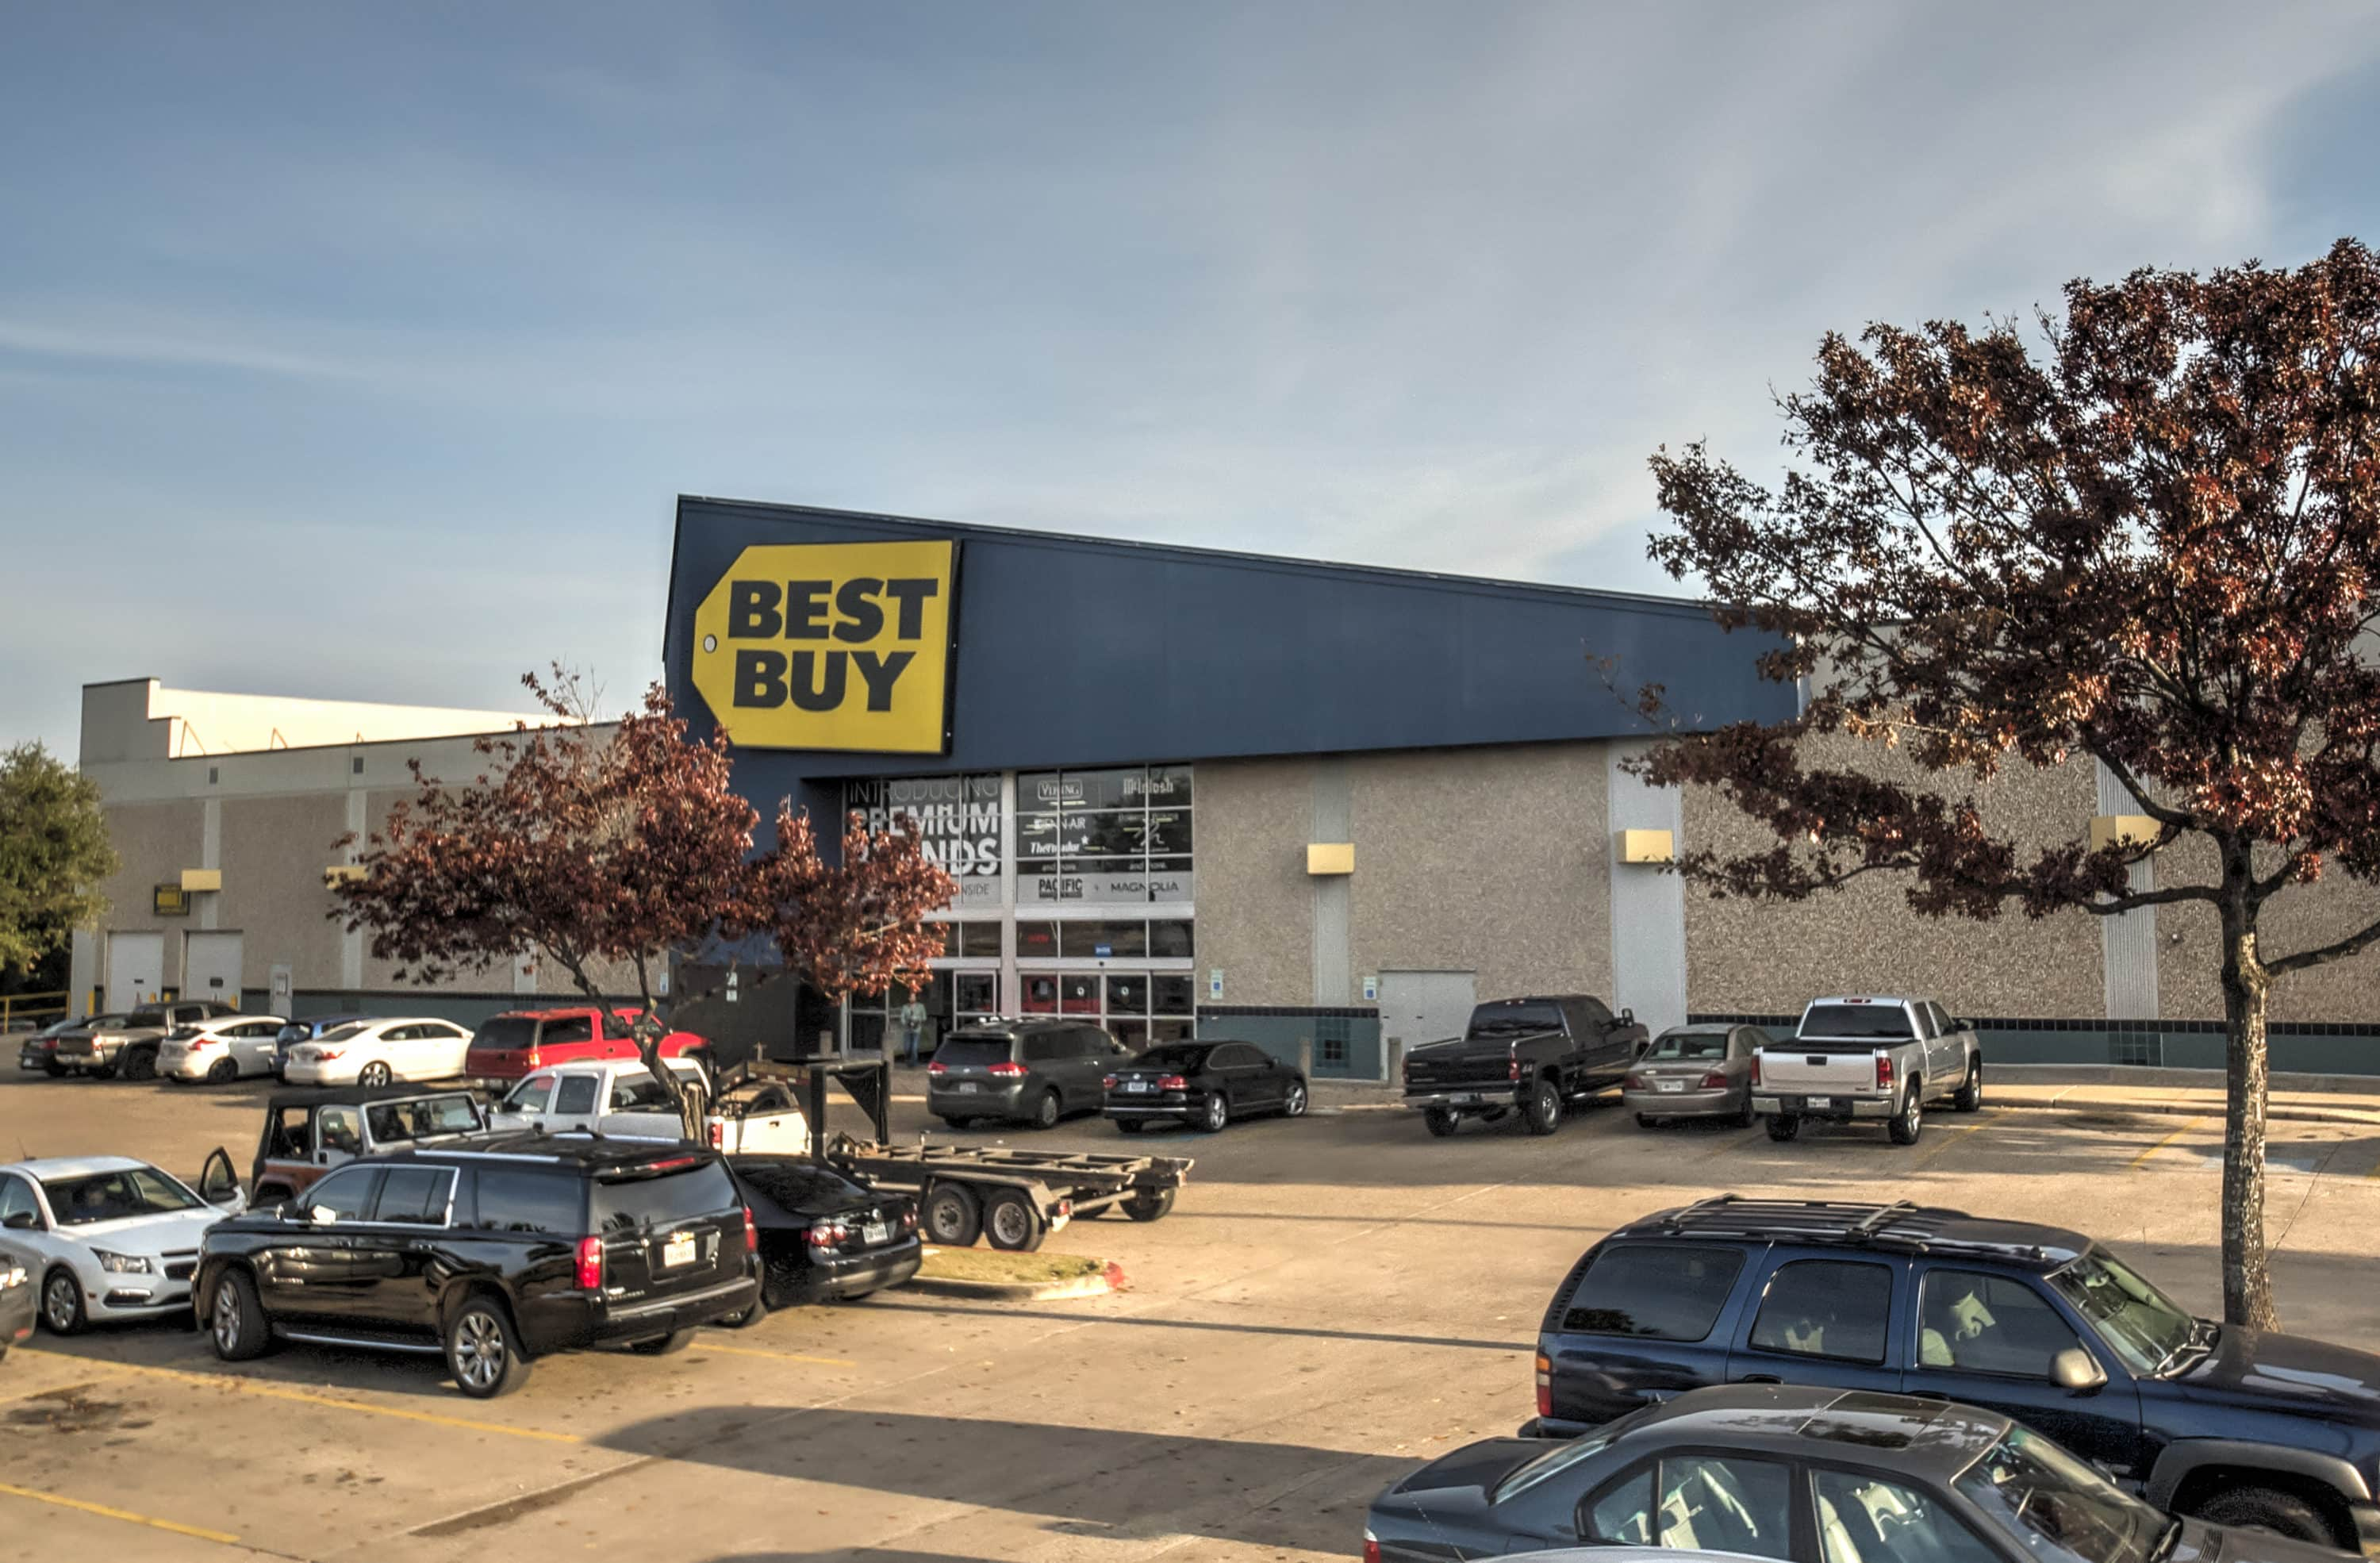 Best Buy at South Towne Square in Austin, Texas | Sunset Valley, Texas